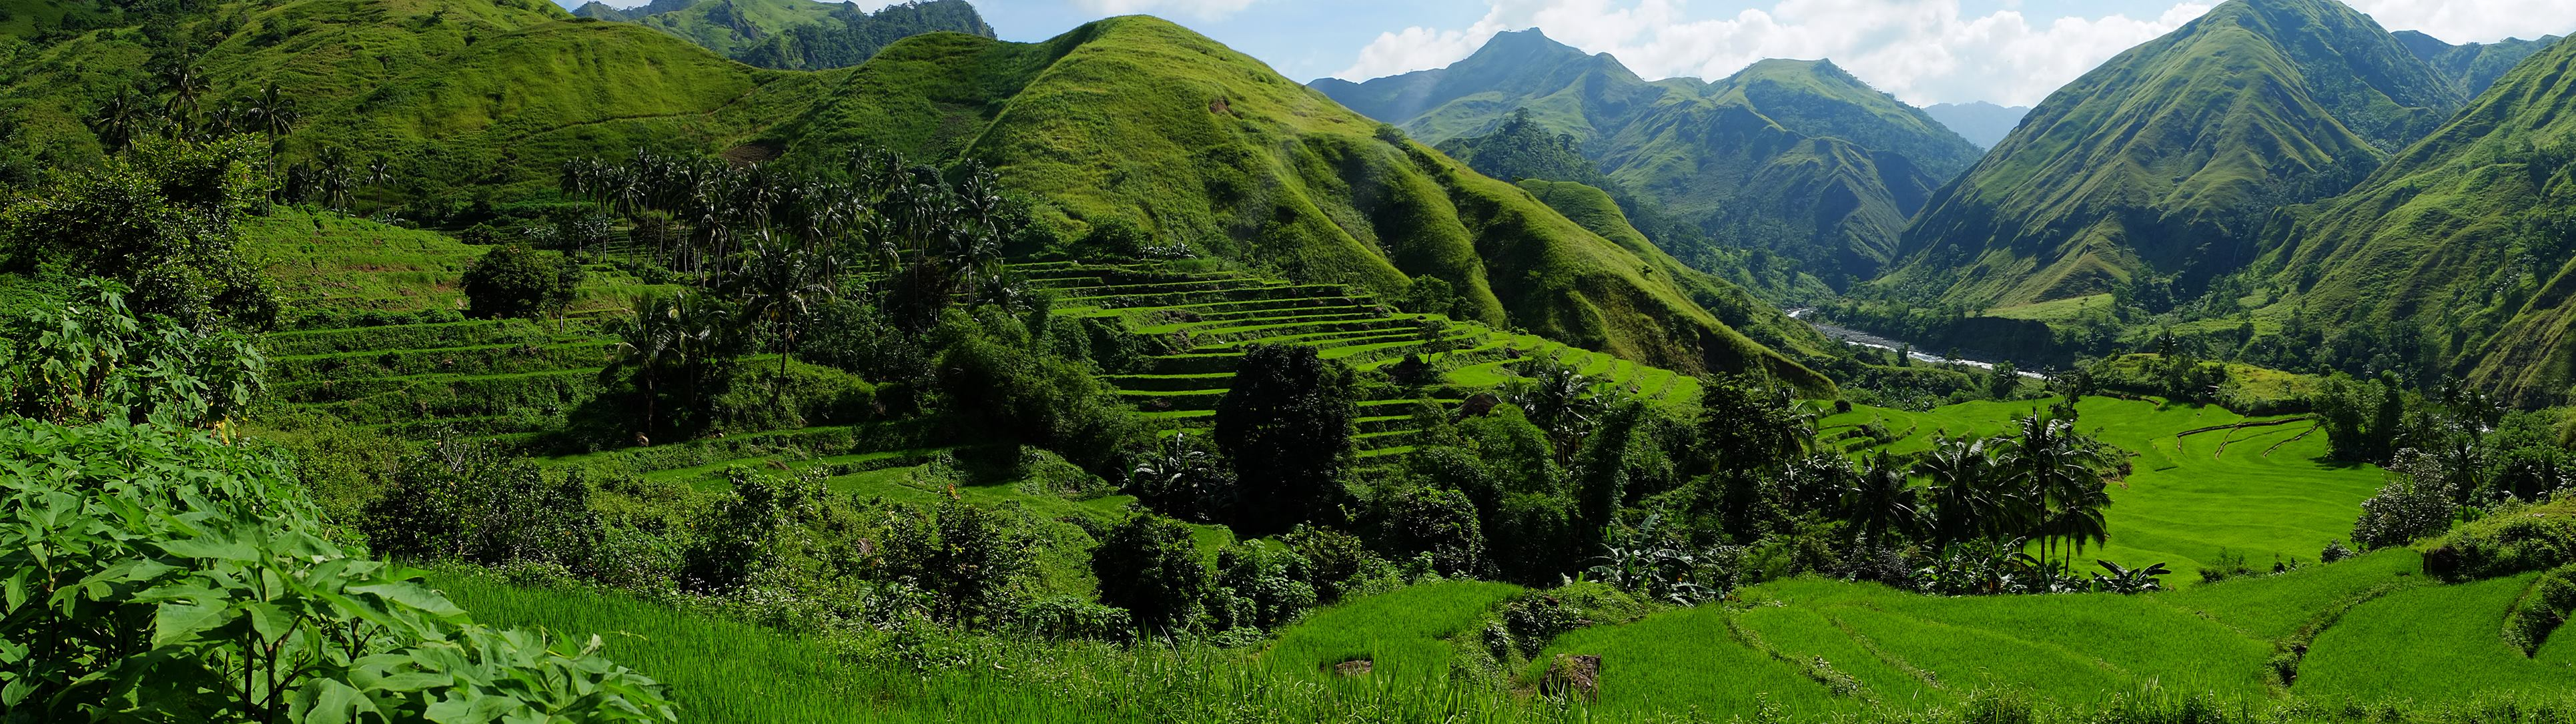 Antique Rice Terraces. Photo by Ruperto Quitag